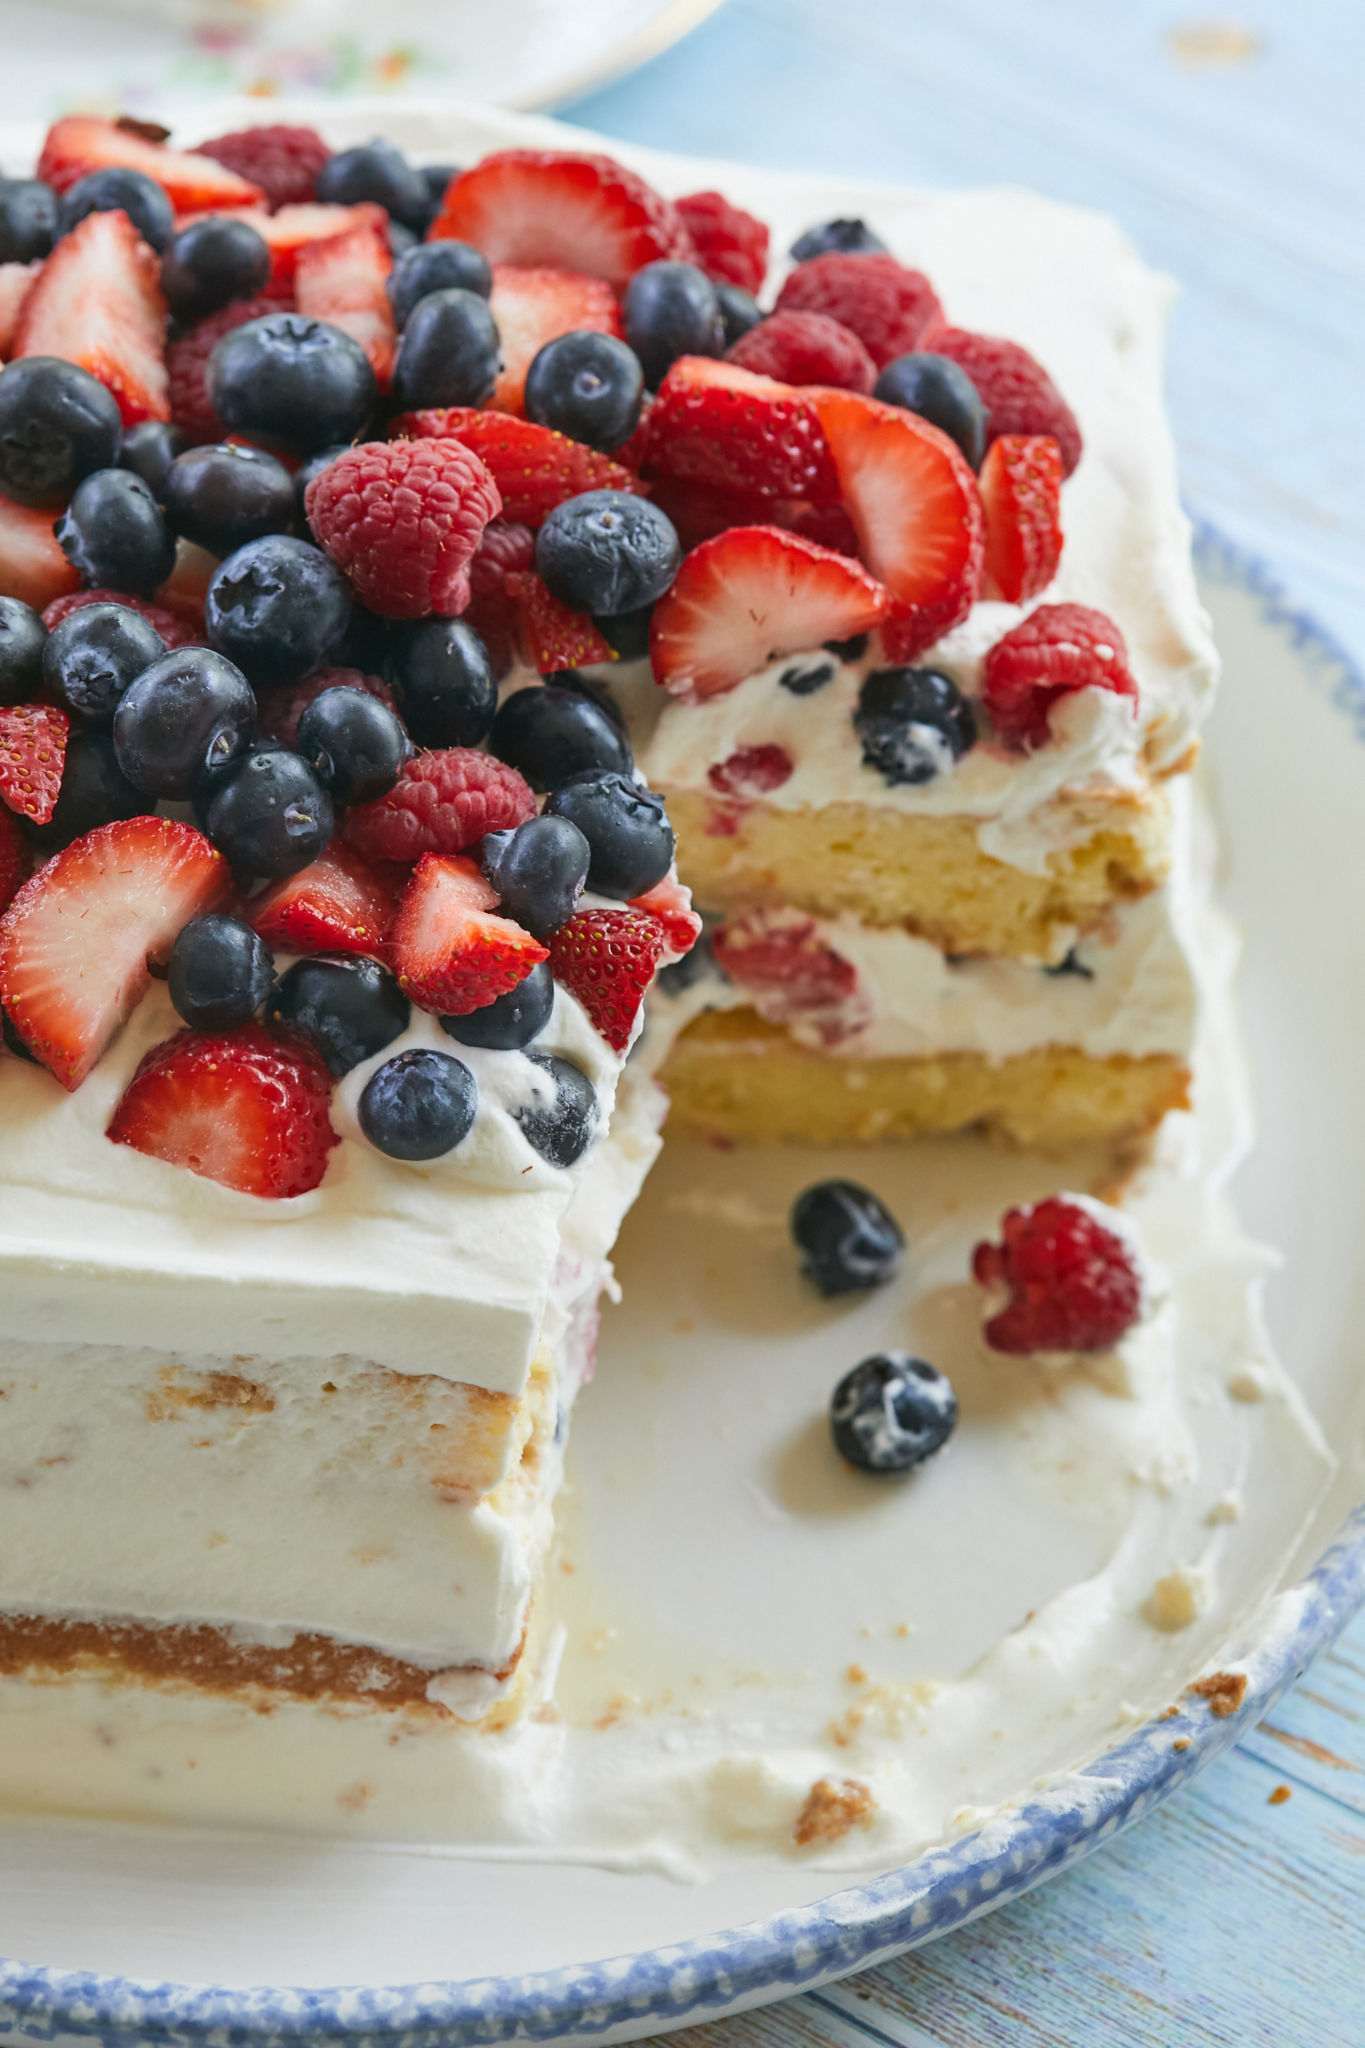 A Milk'N Berries Cake with a slice removed.